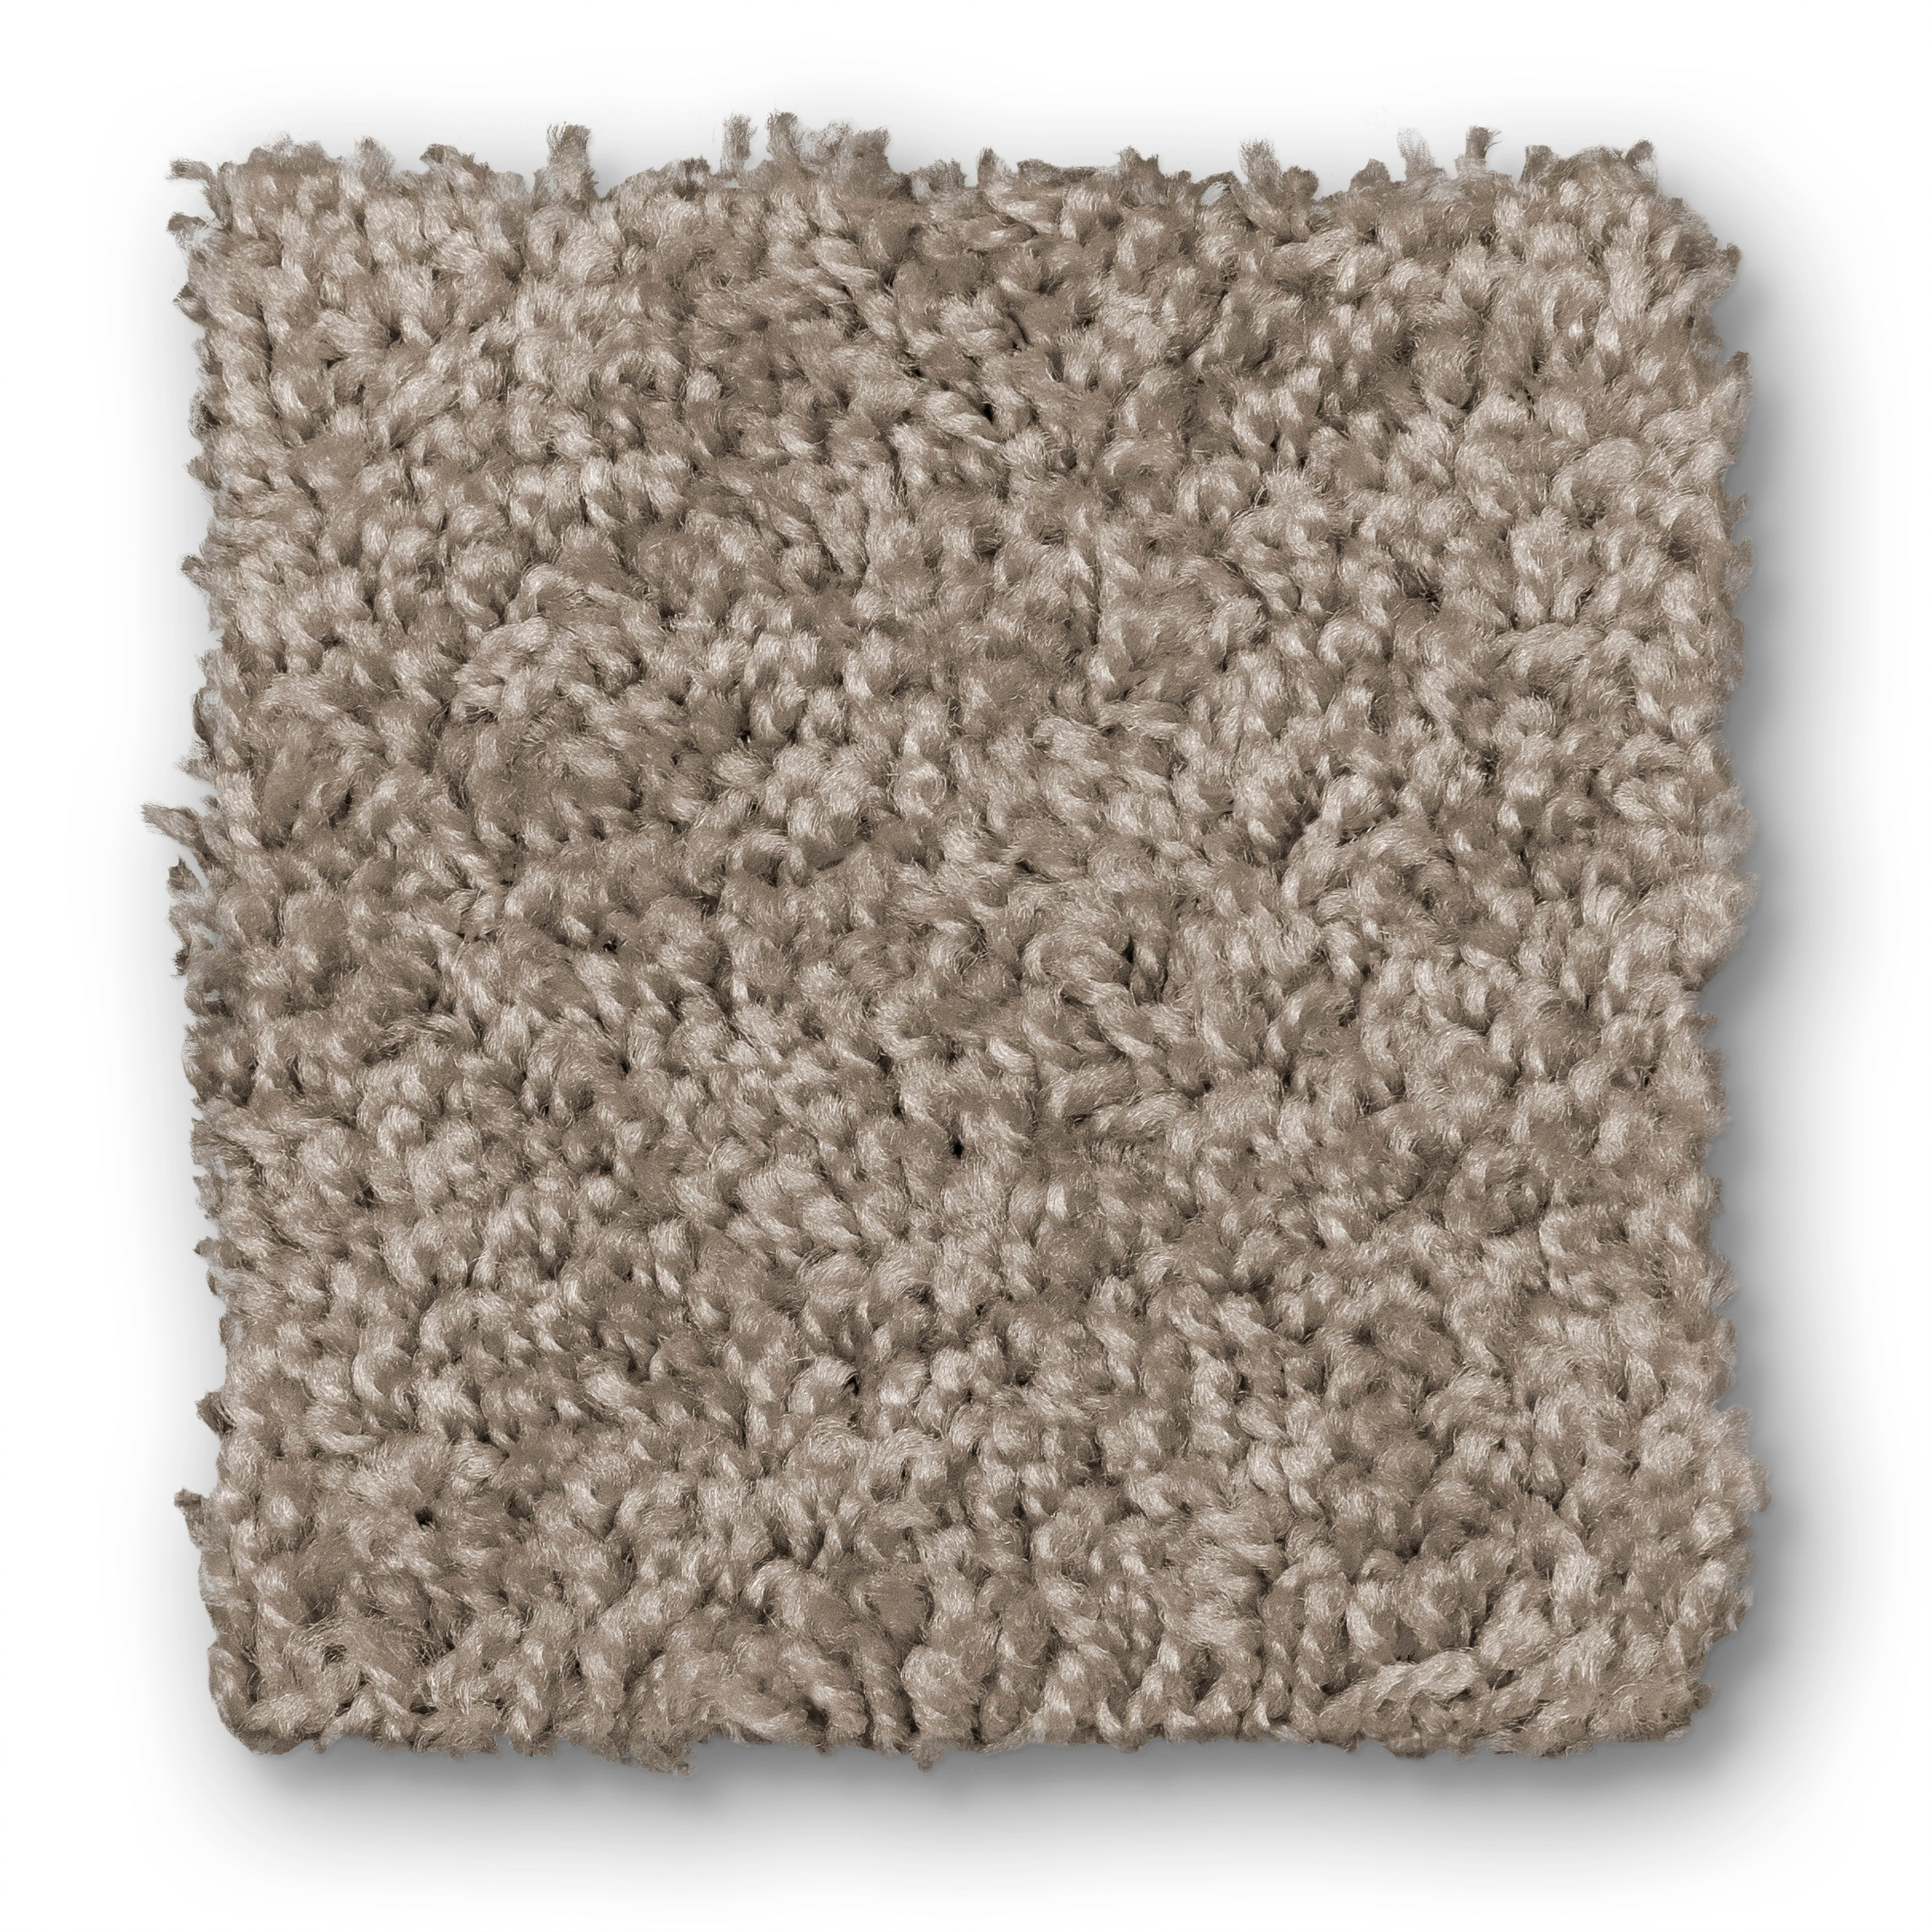 Shop Berkshire Thrive Collection Diy Carpet Tile Good Earth 24x24 On Sale Overstock 29402144